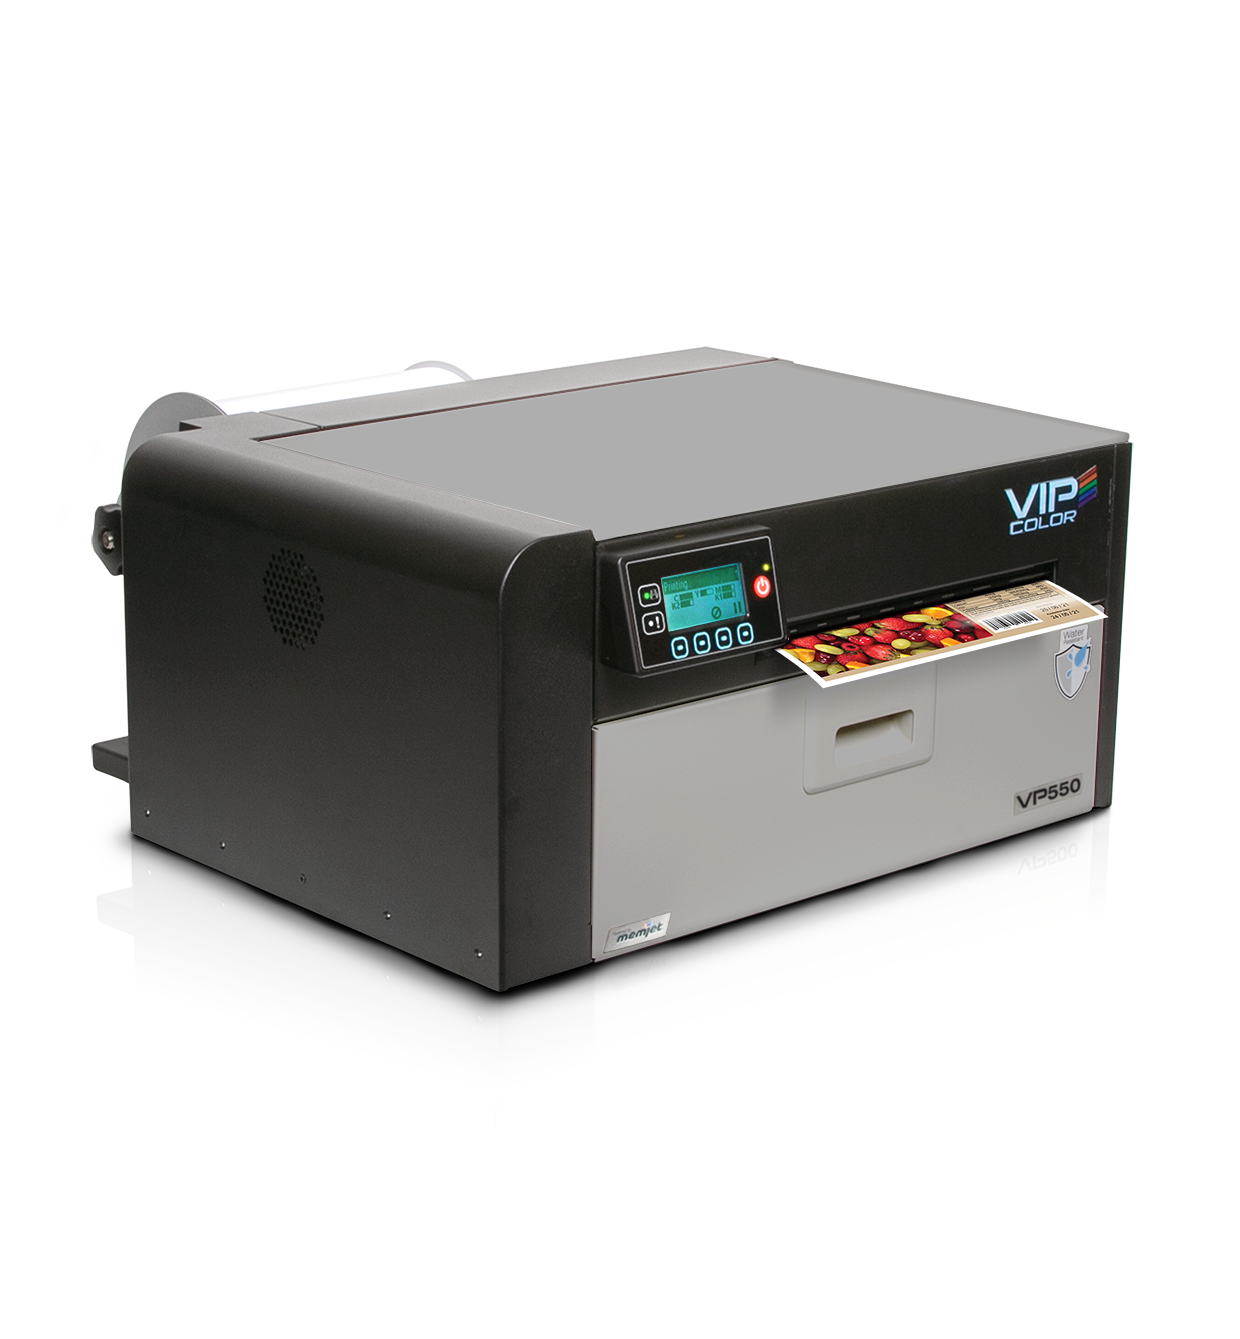 VP550-color-water-resistant-label-printer-for-small-business